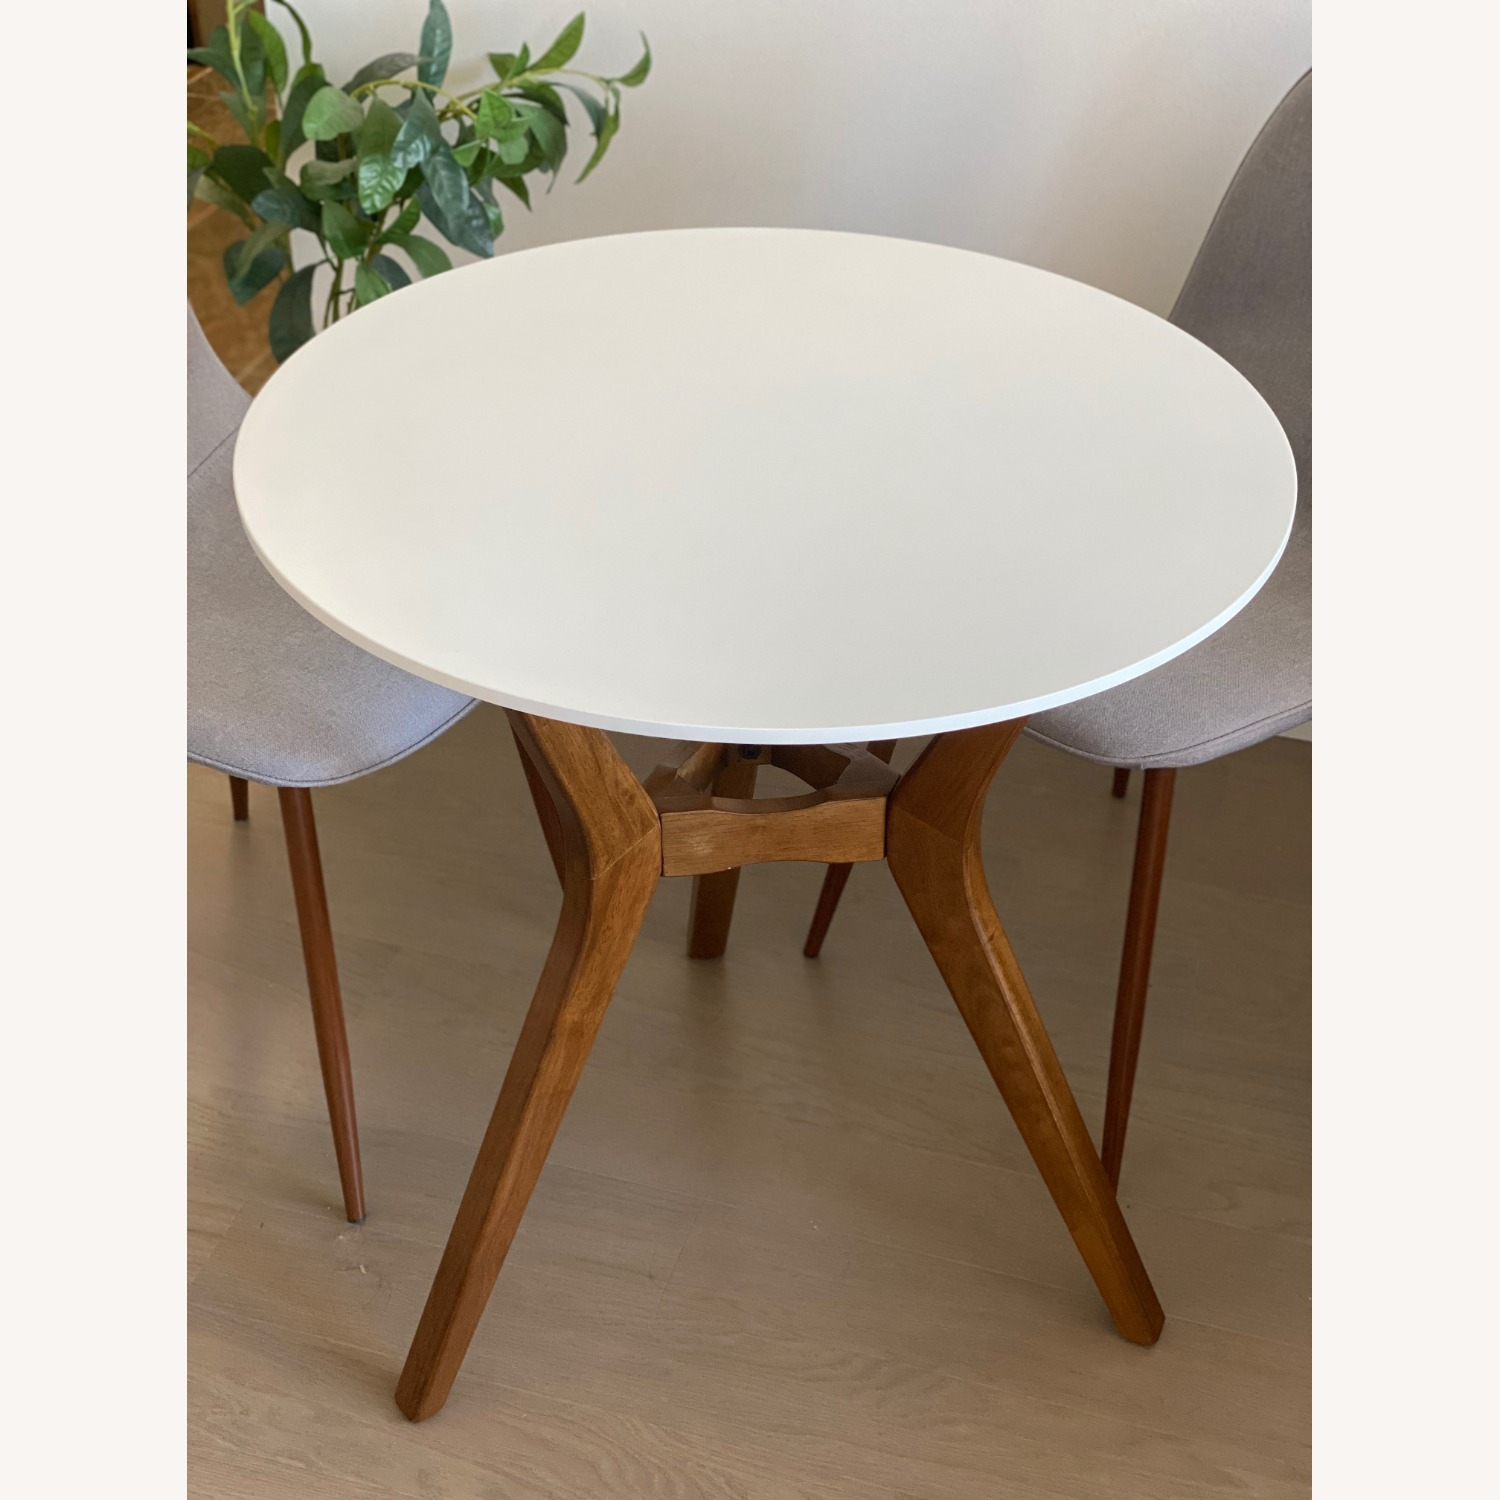 Target Midcentury Bistro Table with 2 Dining Chairs - image-2